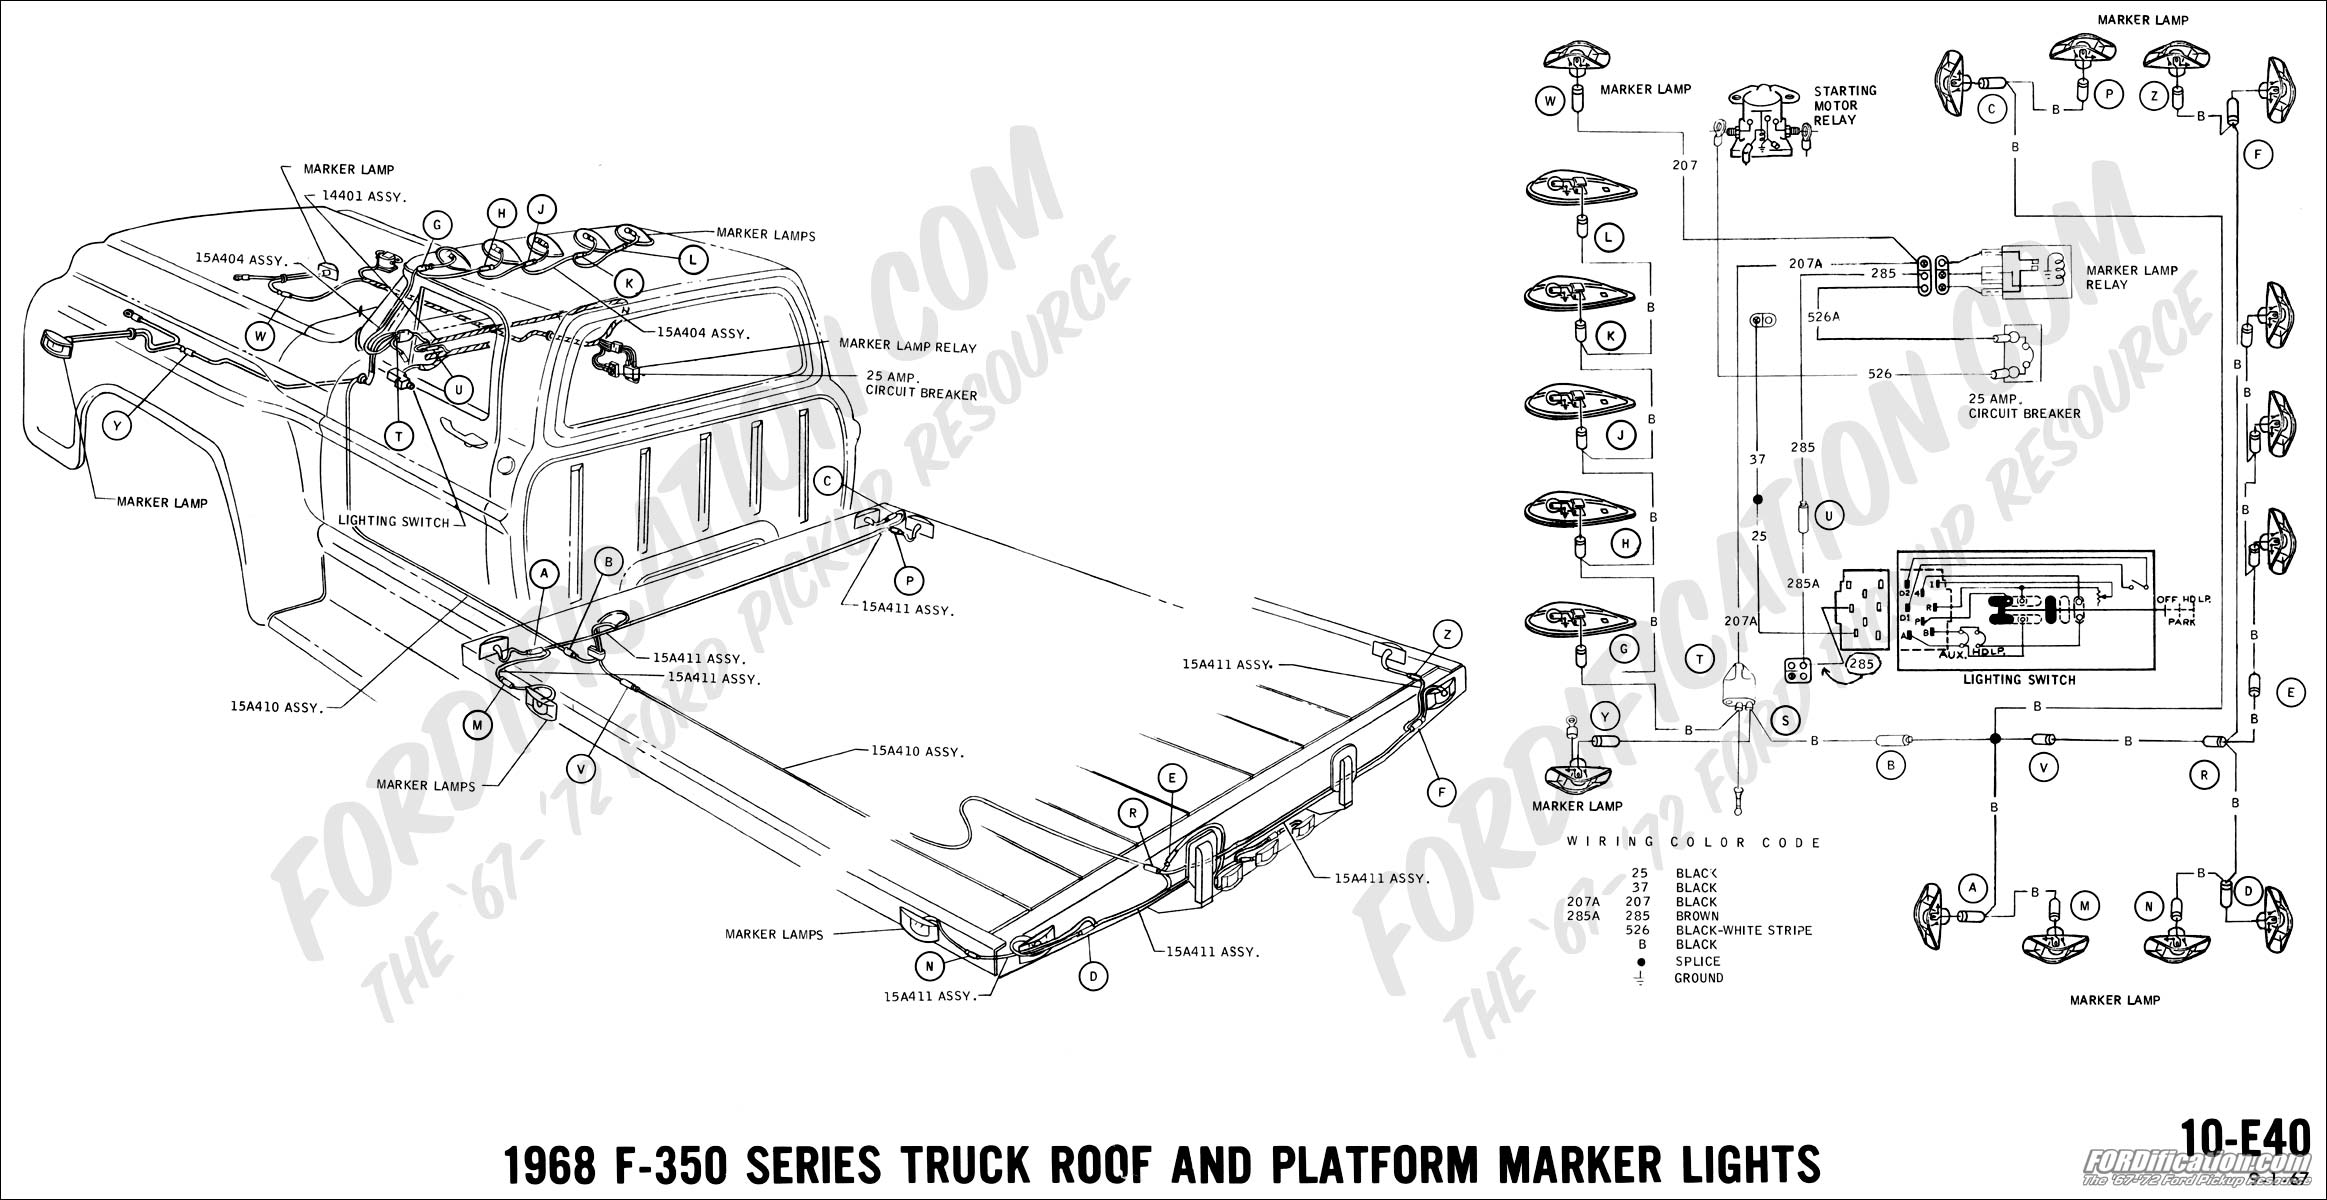 Factory Stereo Wiring Diagram For Chevy Astro Van